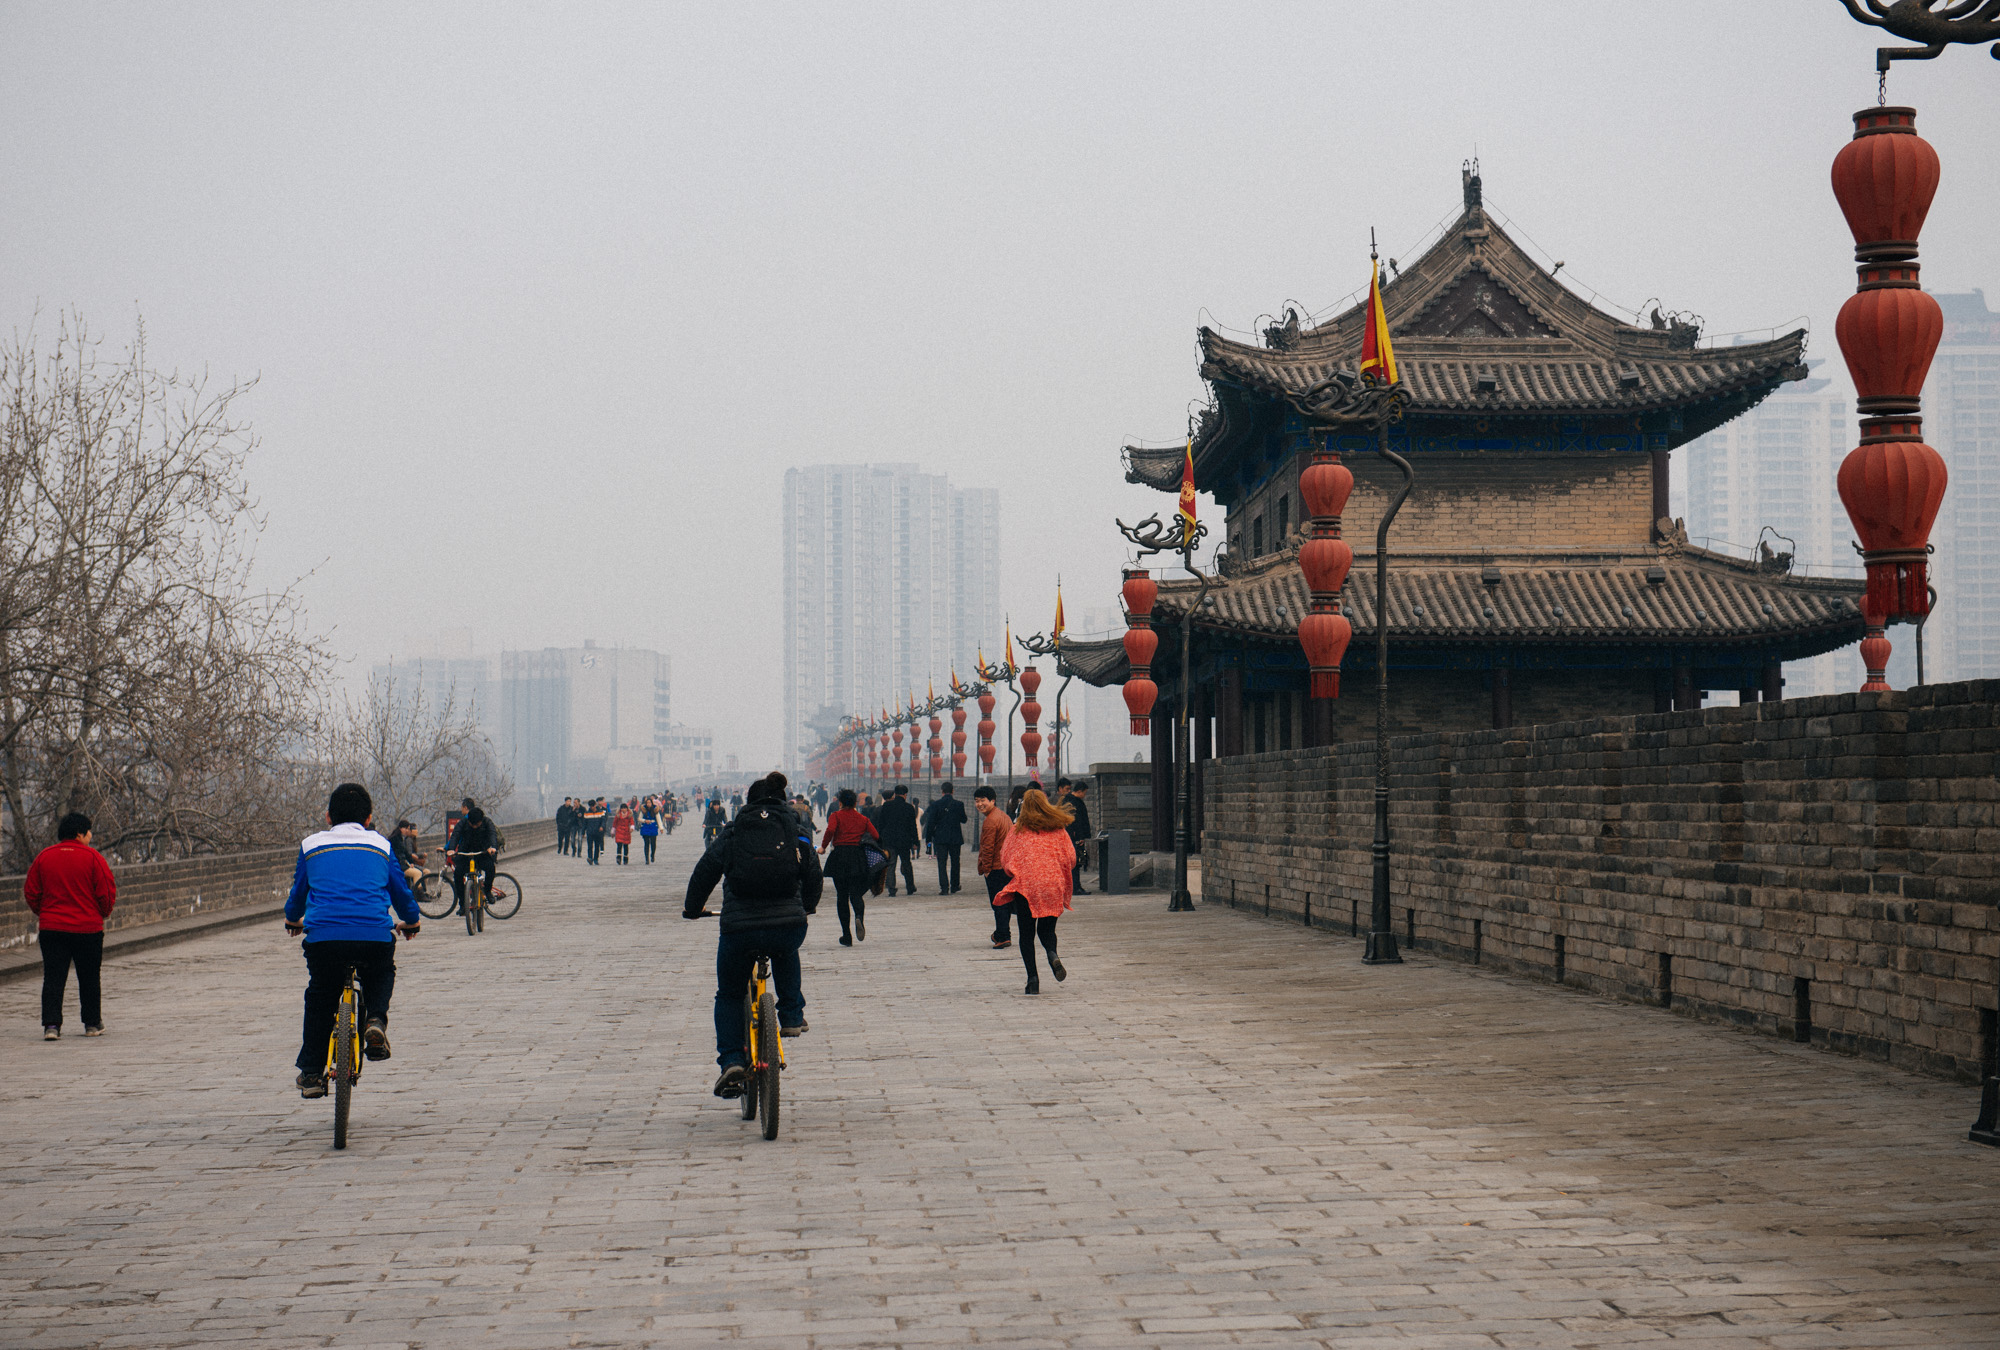 The walls encompass an area of 36 square kilometers (you calculate the perimeter) so it takes quite a while to go around the whole thing. In certain spots you can rent bikes if you want to speed through.